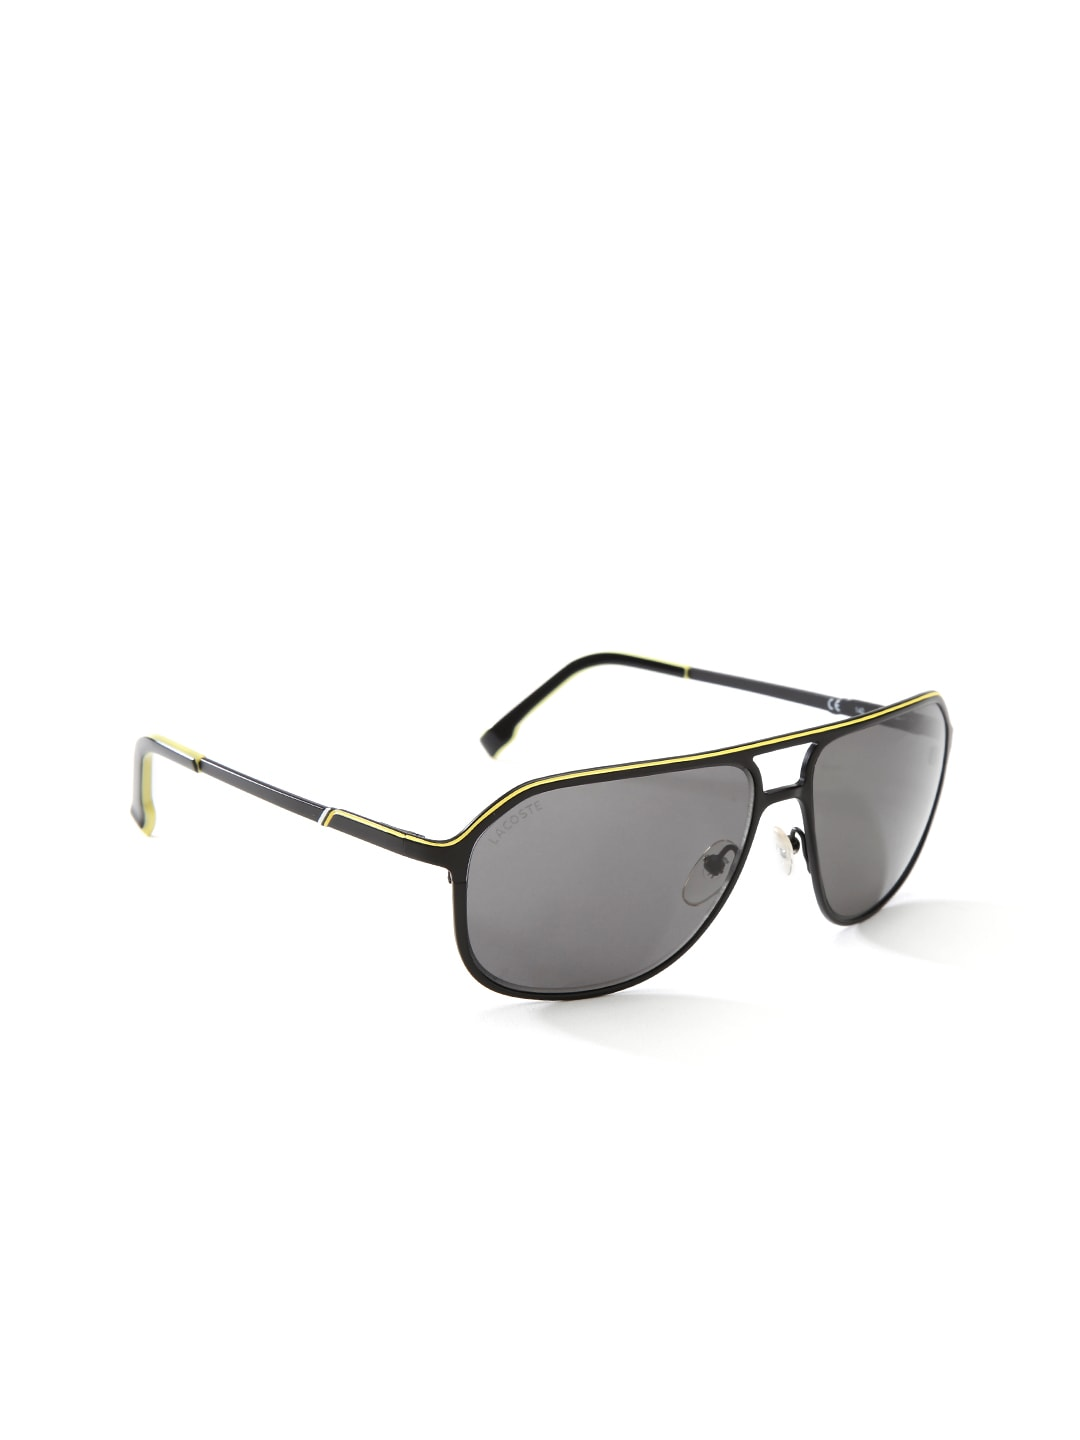 381e7777290 Lacoste l139sp-001-black Unisex Oval Sunglasses L139sp 001- Price in India